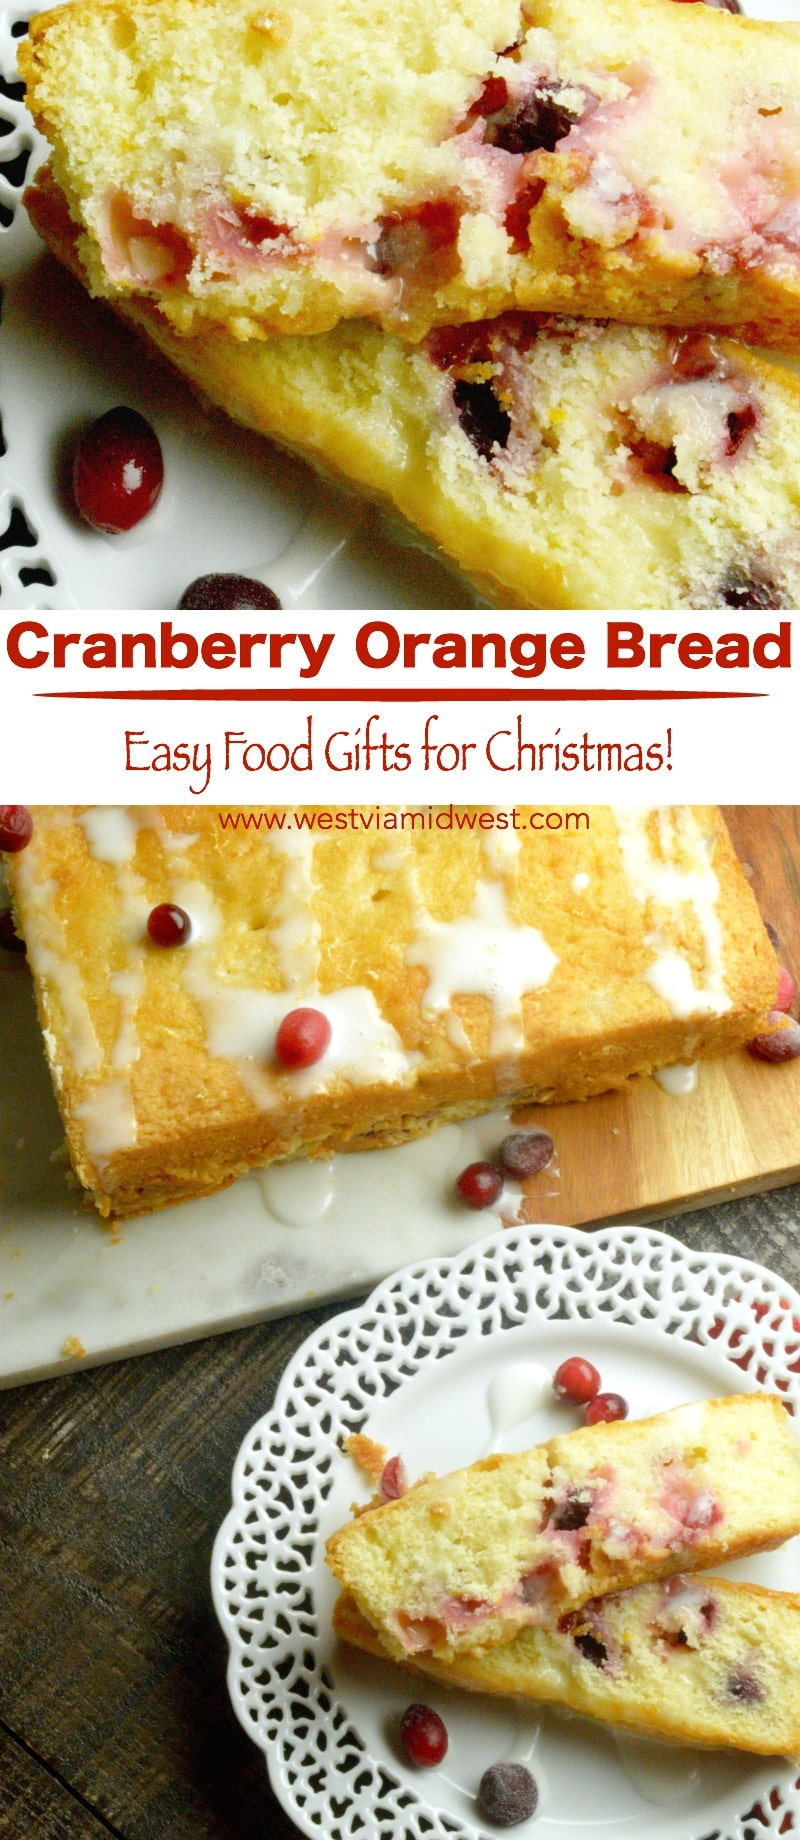 Cranberry Orange Bread: Fresh cranberries, paired with orange citrus in what can be called a bread or cake. A tender crumb filled with goodness and drizzled with a simple sugar glaze. A homemade treat that will be appreciated for all of the people you make food gifts at Christmas for! #christmas #holidays #Foodgifts #cranberry #freshcranberries #cranberrycake #bread #cake www.westviamidwest.com